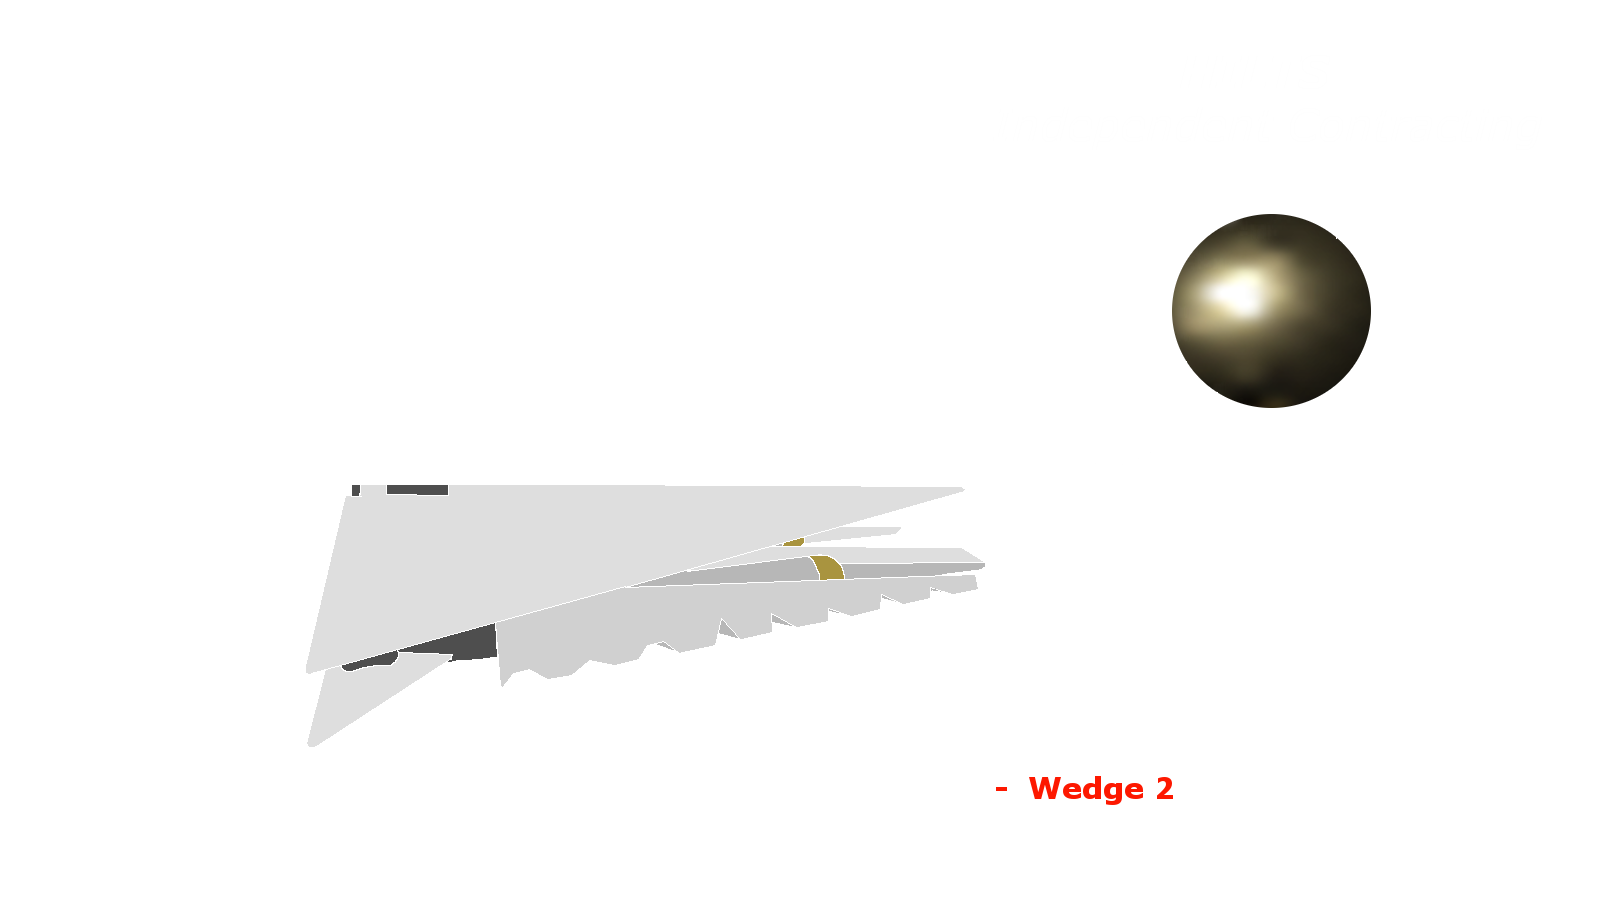 Wedge22.png